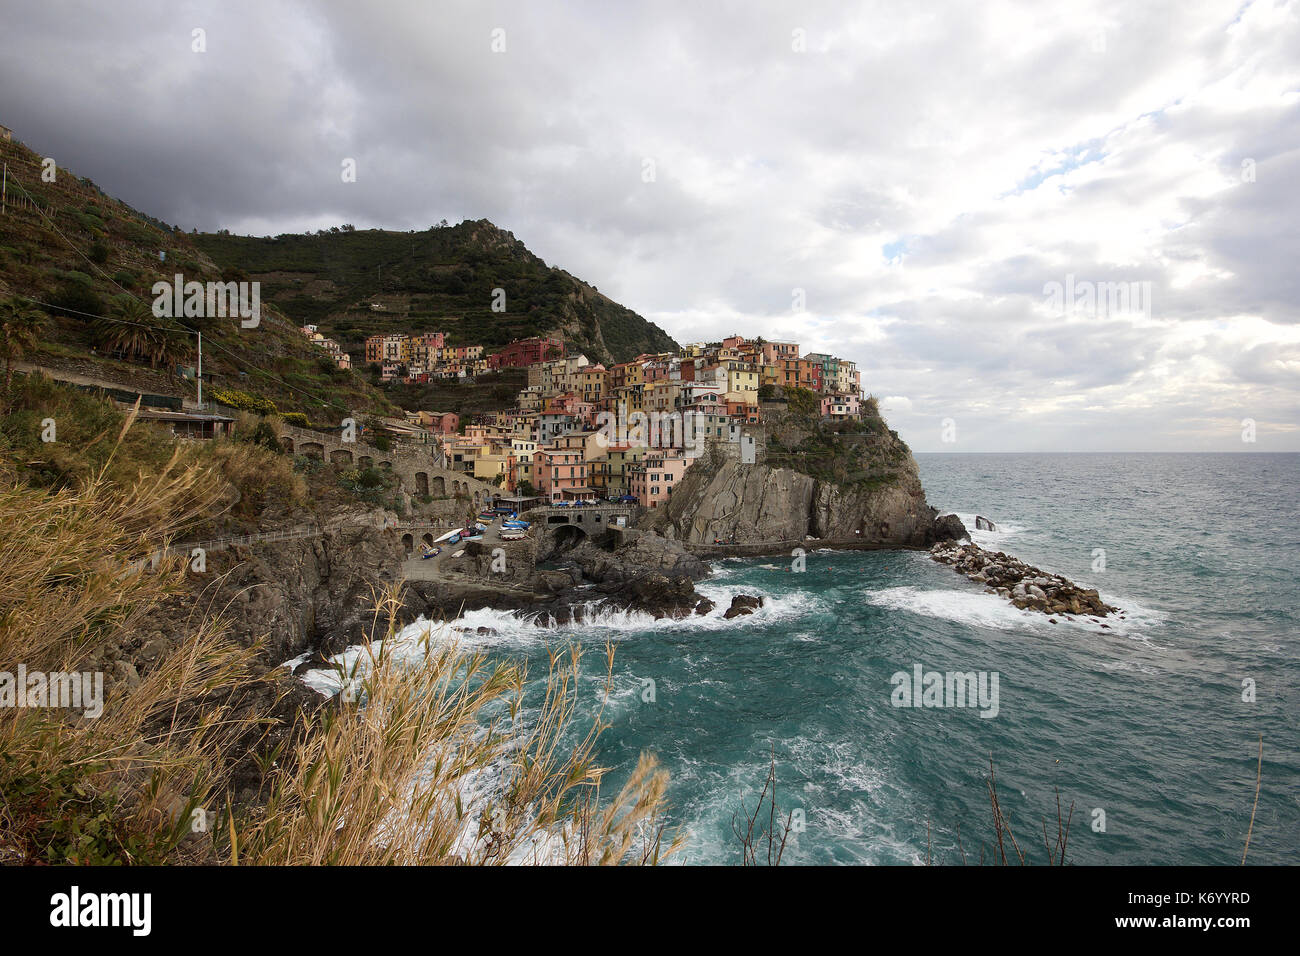 the beautiful pastel colored houses of Manarola, Le Cinque Terre, Italy, from a distance, photoarkive Stock Photo